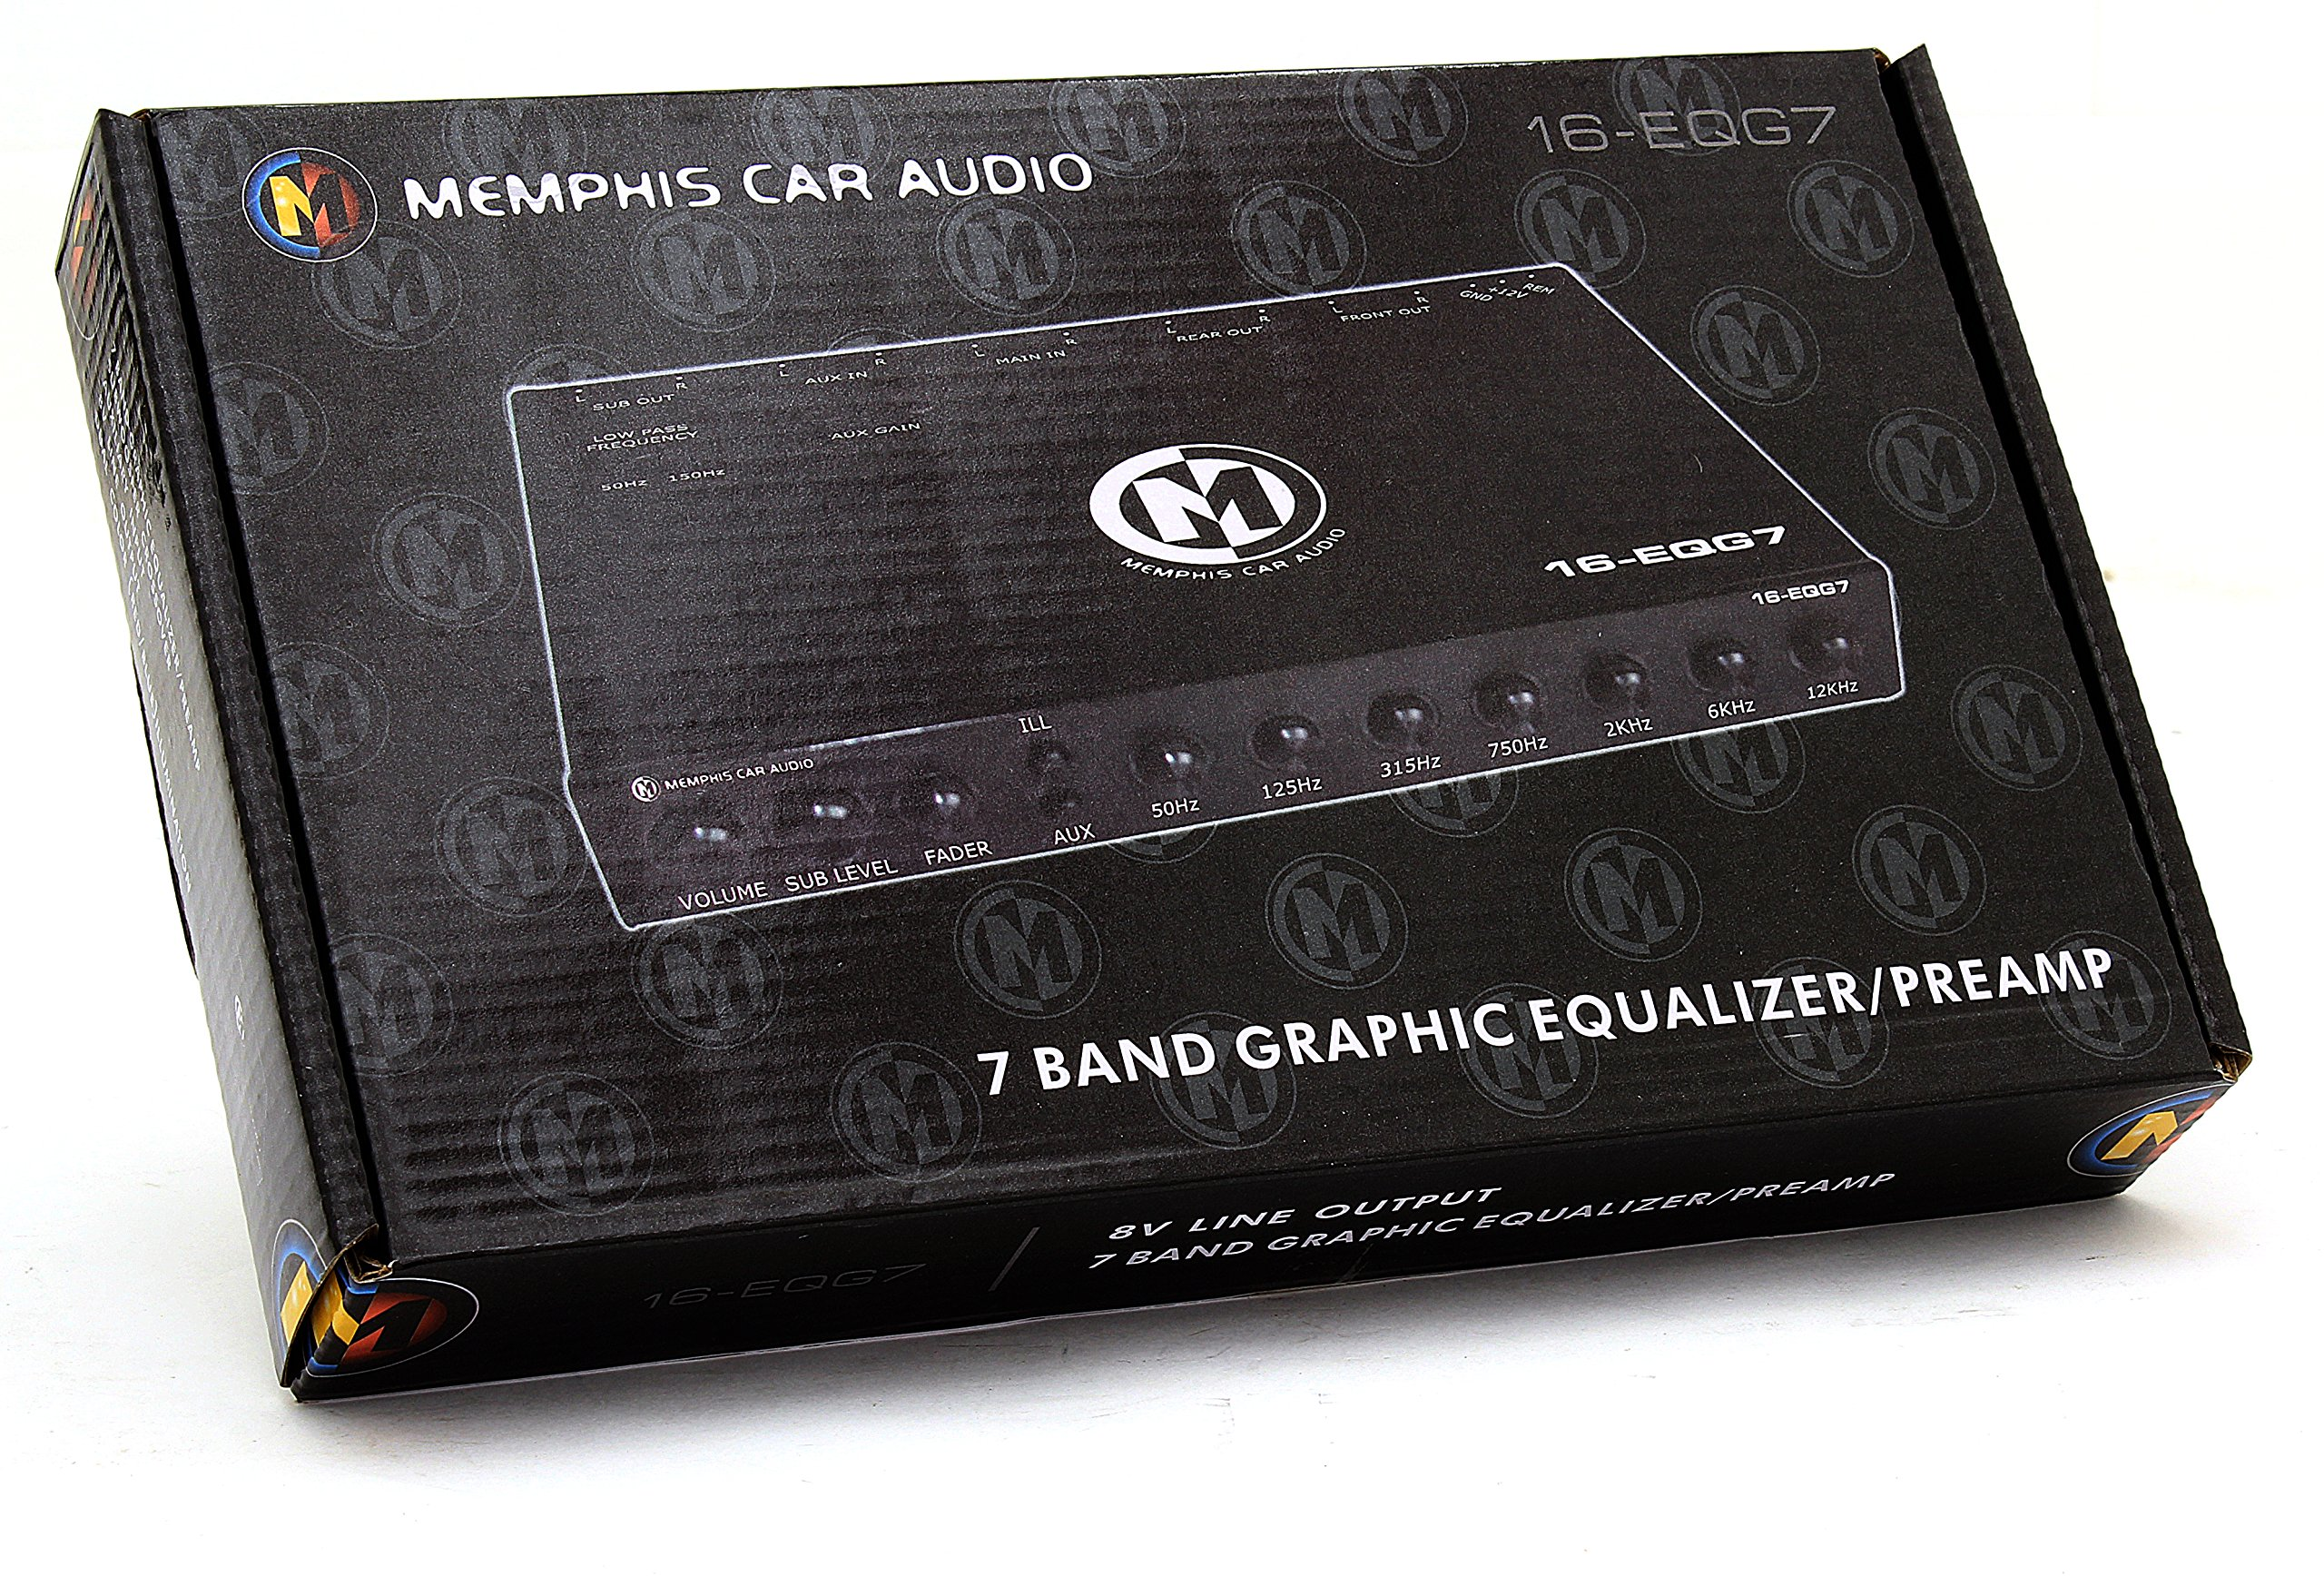 16-EQG7 - Memphis 7-Band Graphic Equalizer / Preamp by Memphis